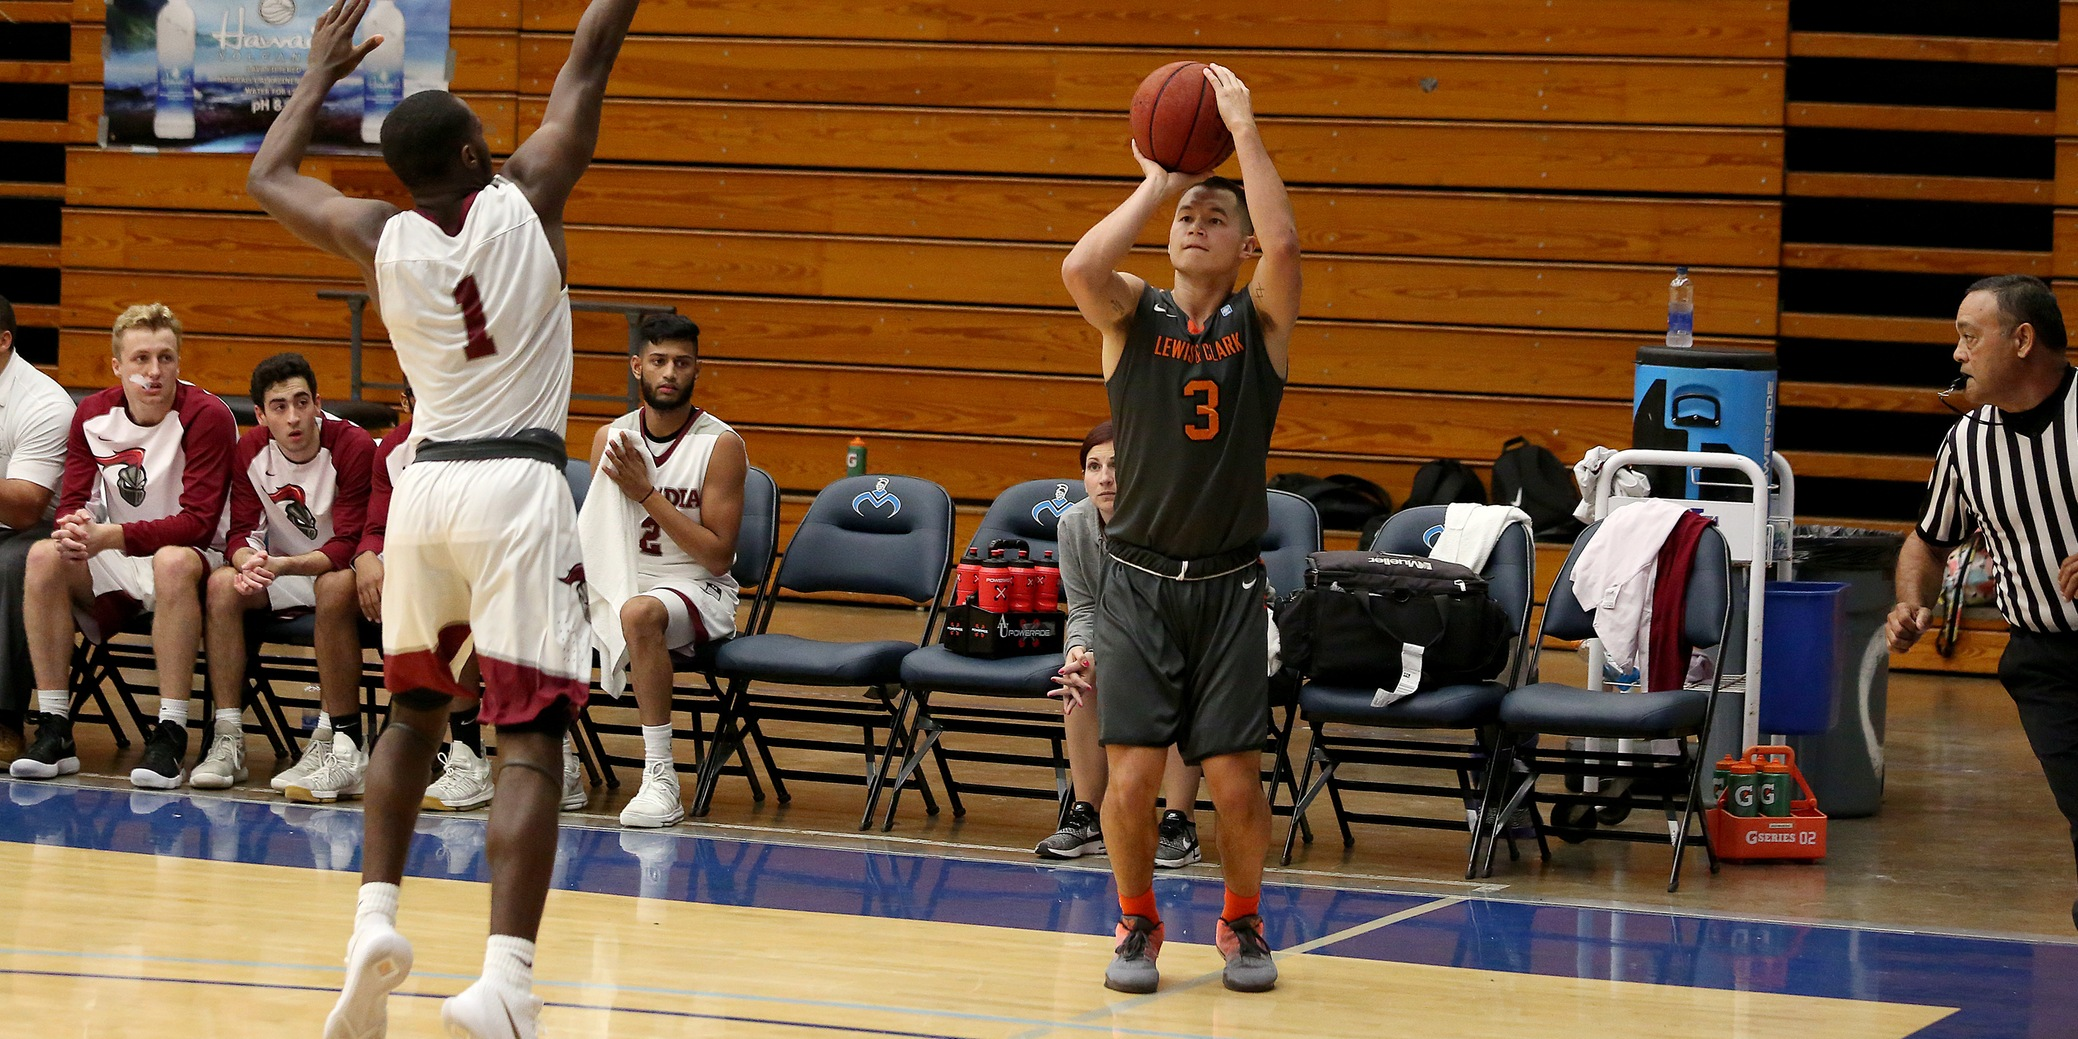 Lewis & Clark extends their win streak to three games